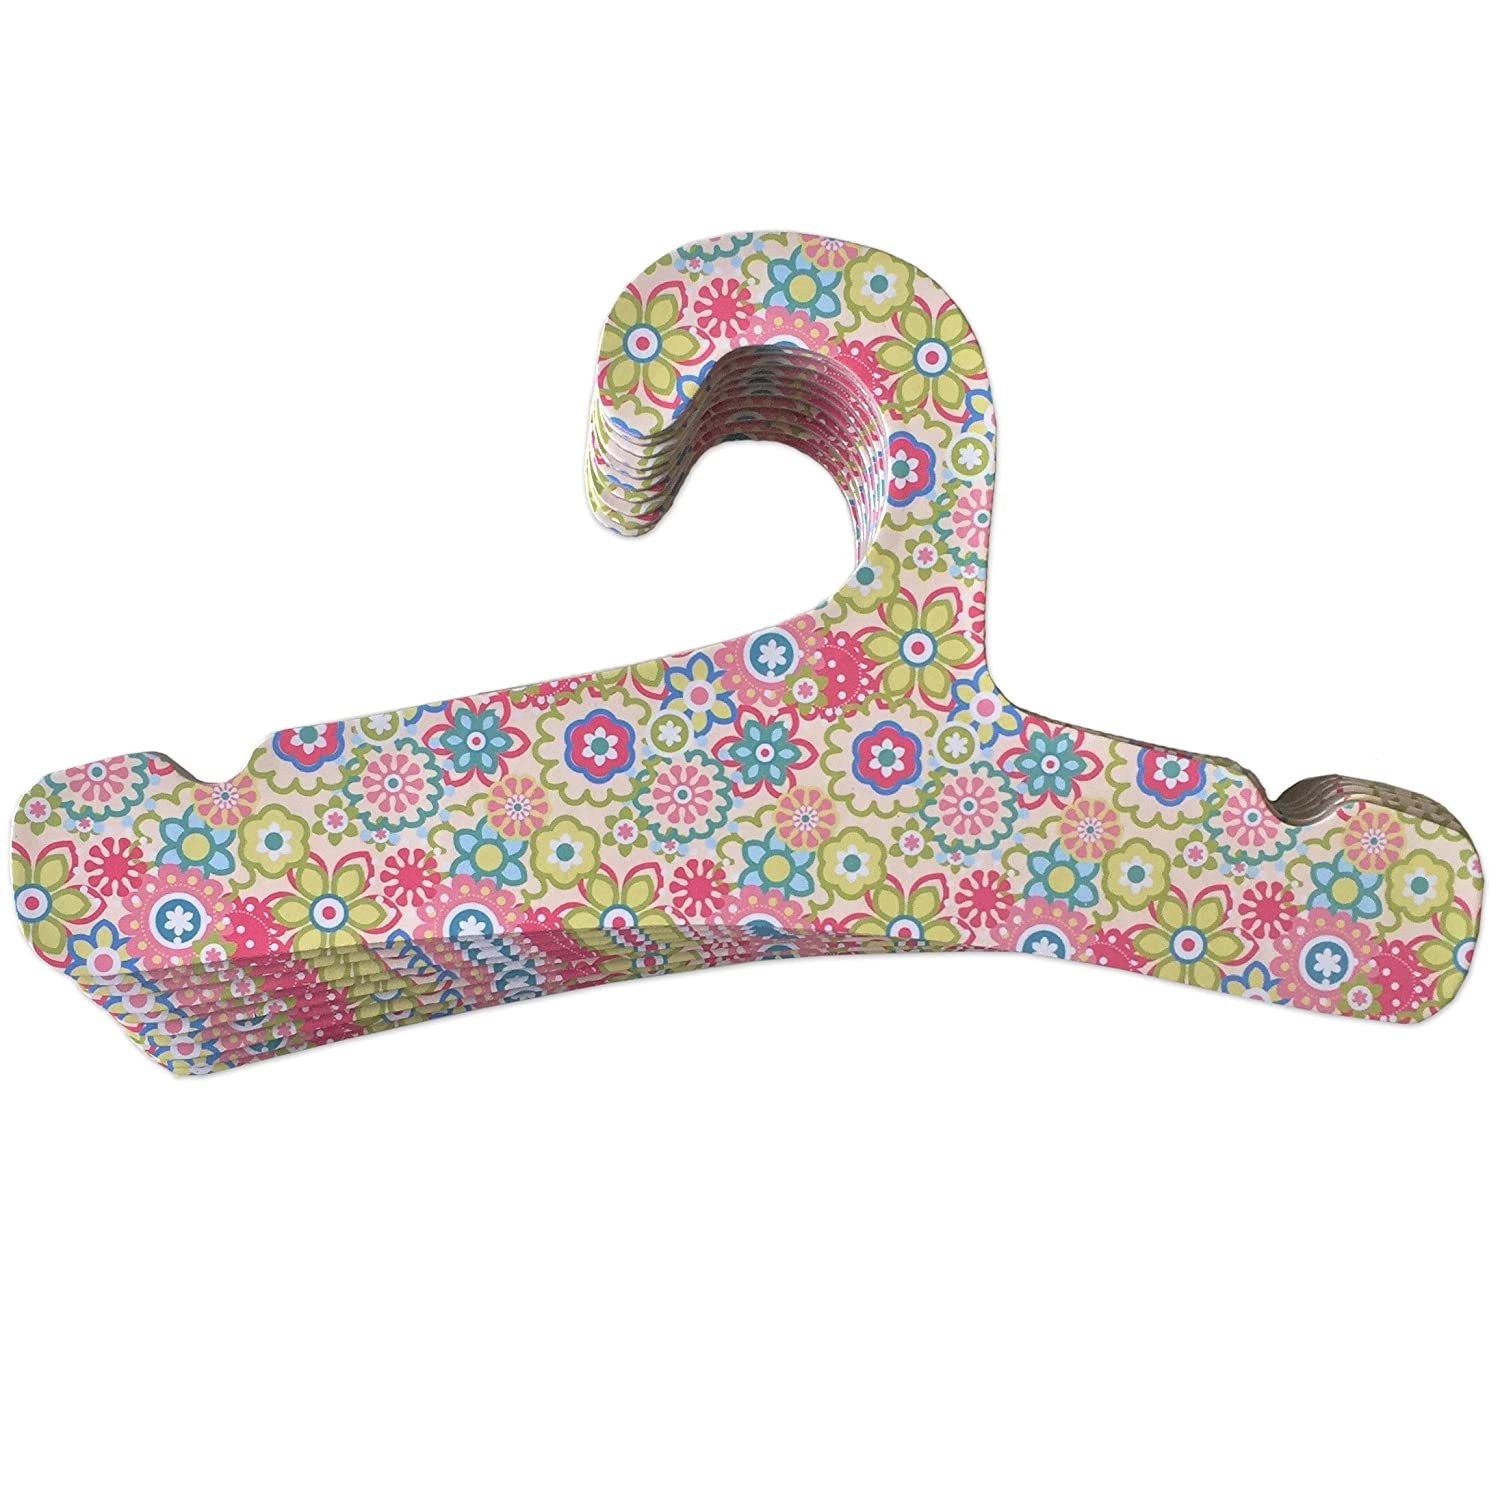 Little Dundi Eco-Friendly Closet Hangers for Toddler/Kid, Set of 10, Flowers LDTH-10F